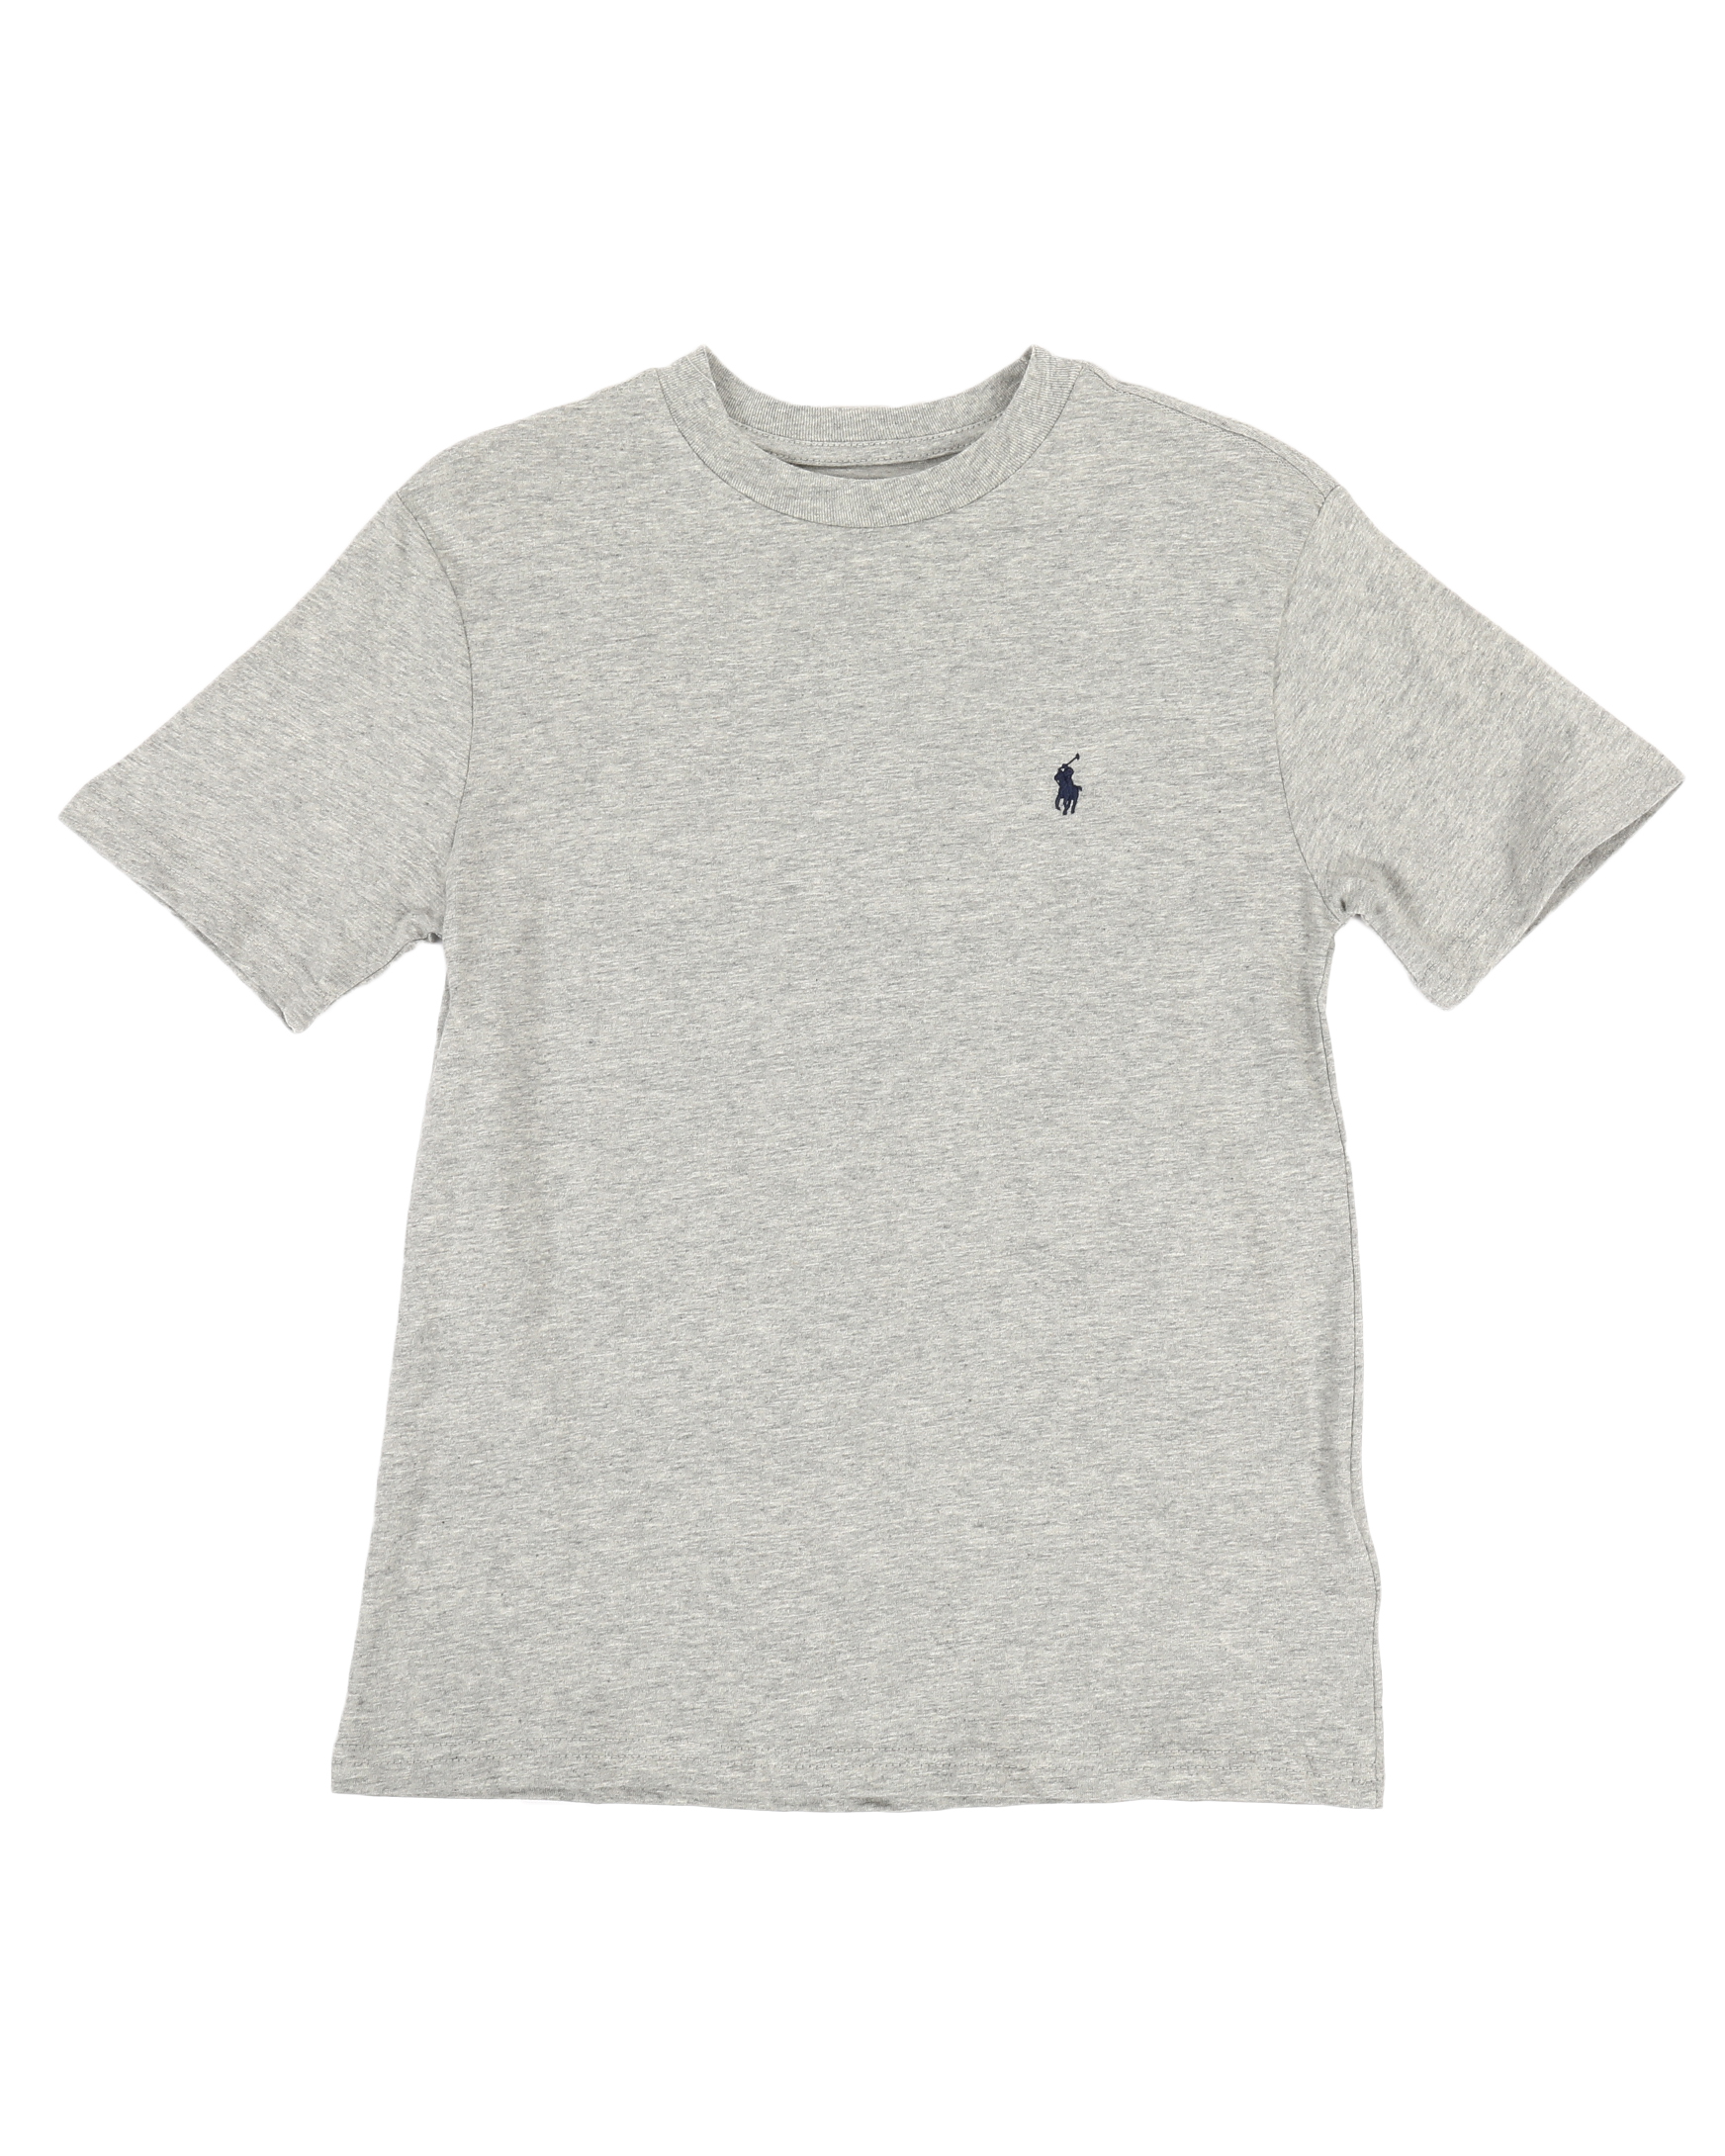 Tops 301 Ralph LaurenFind 20Boys Tee8 Polo Buy Jersey From nv8wmN0